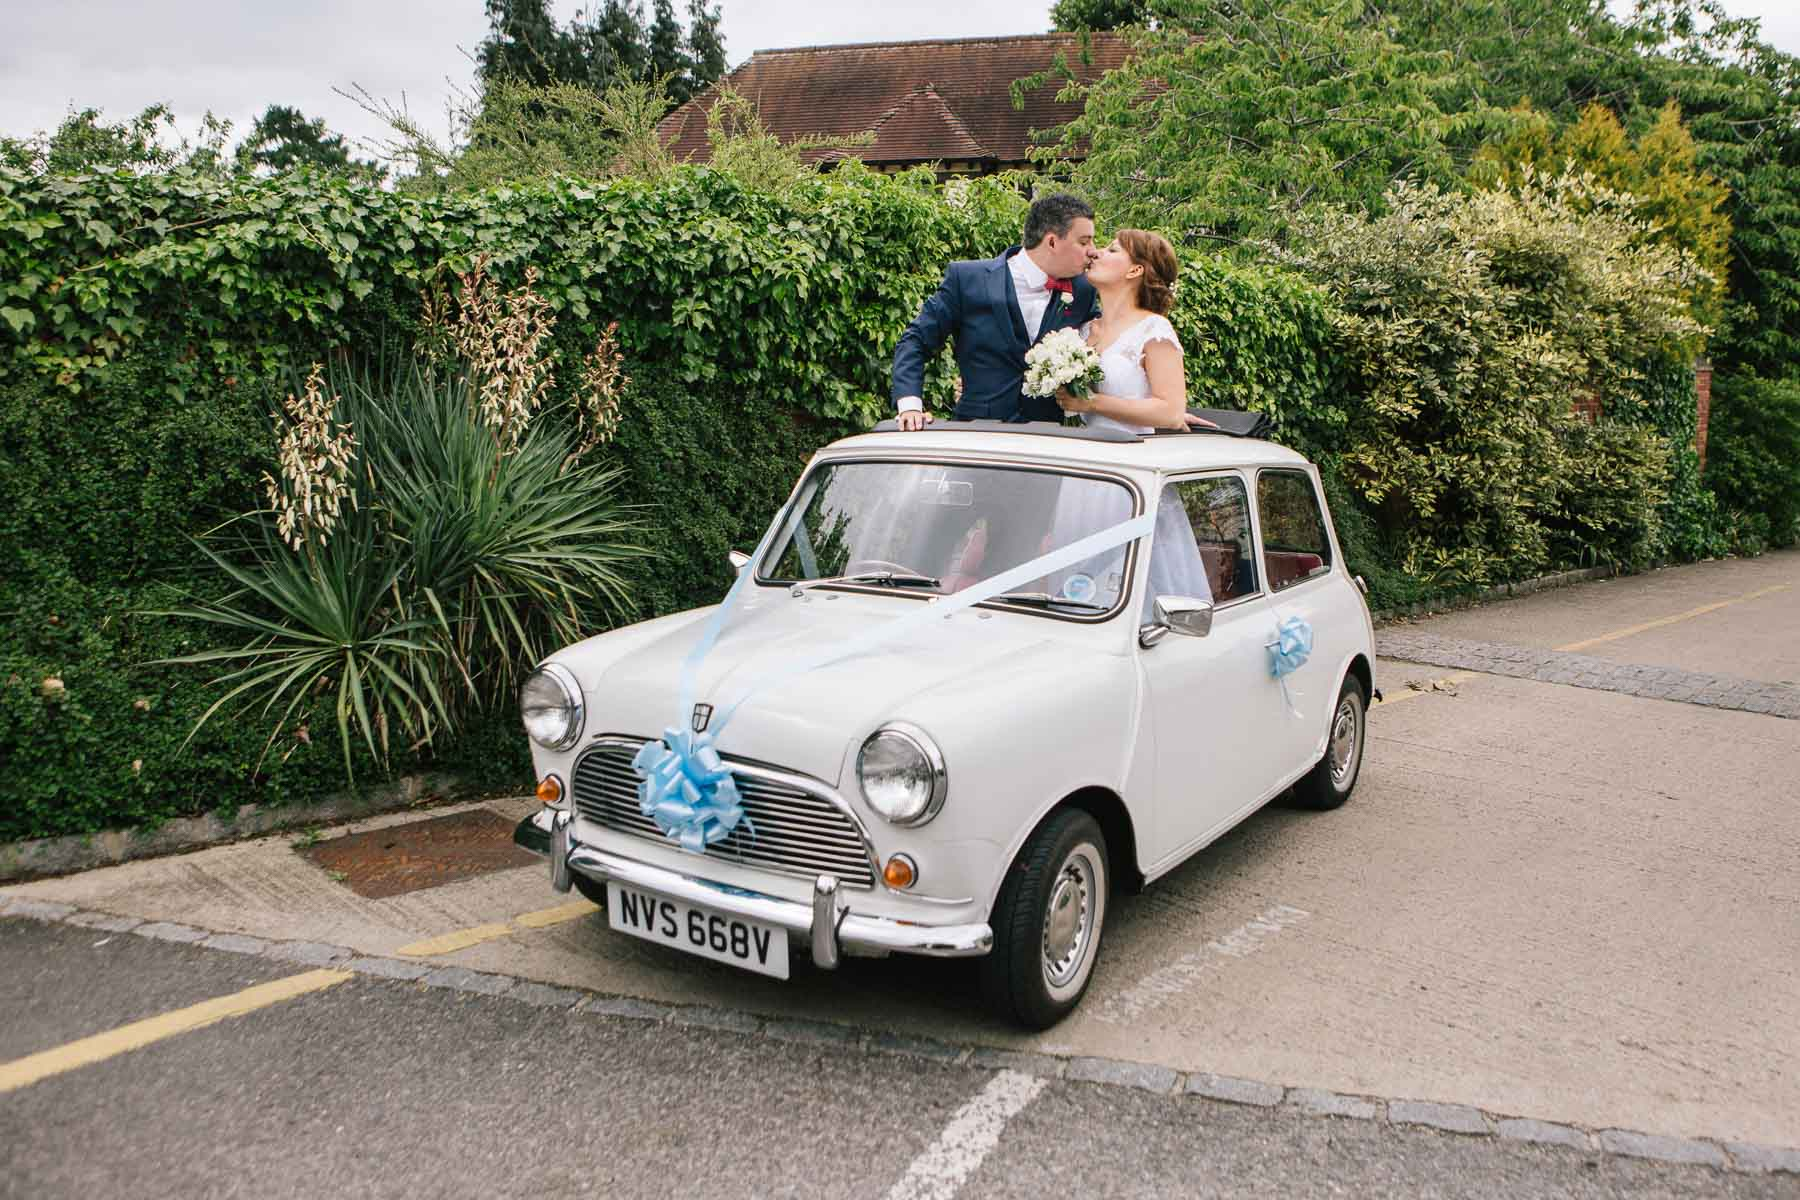 couple in a vintage Mini on their wedding day kissing